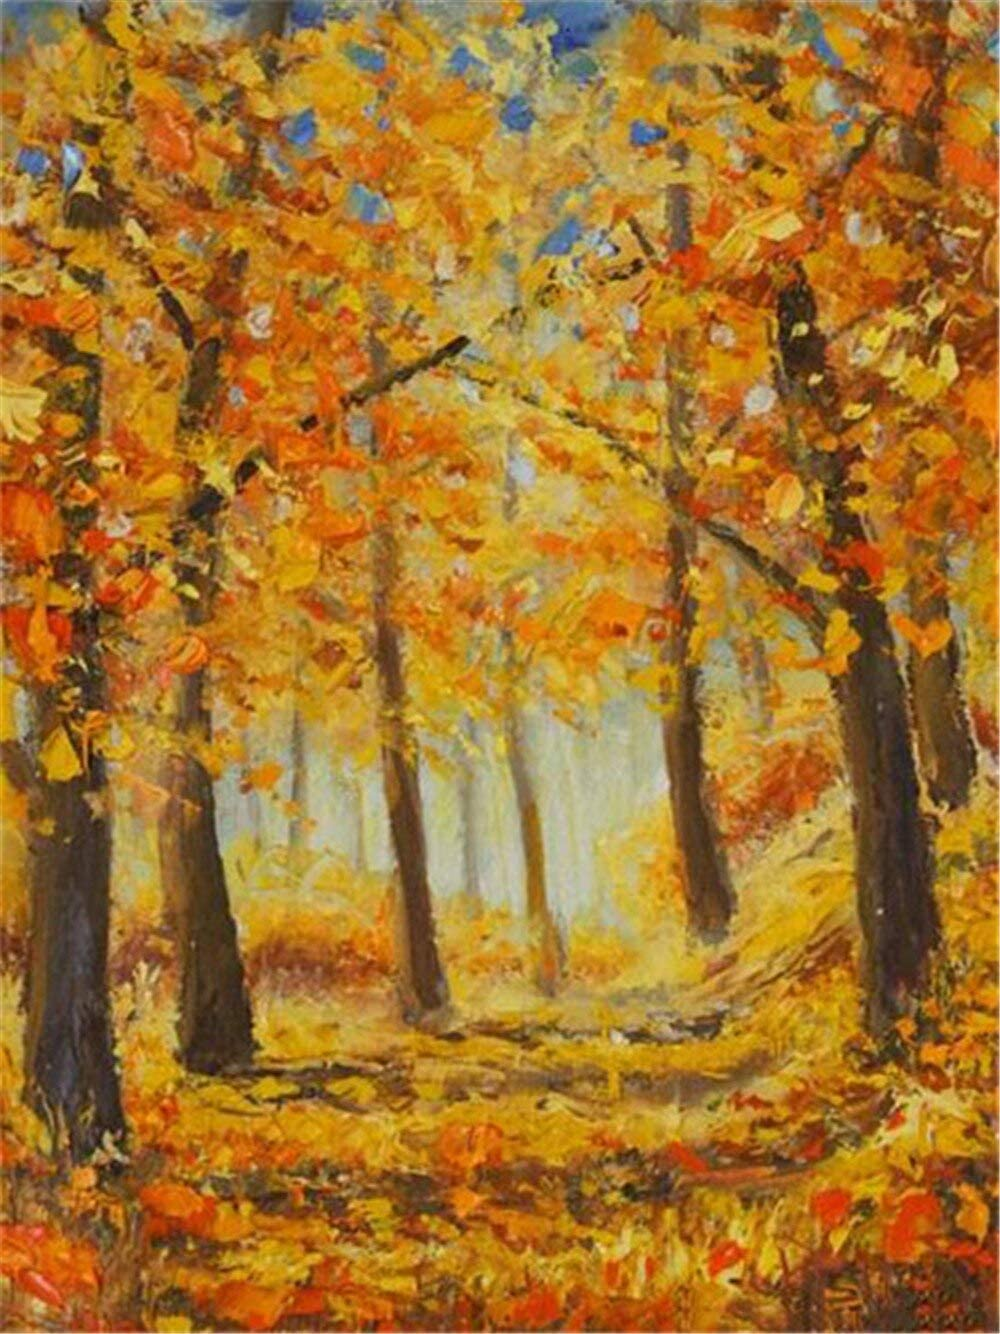 Square NEW before selling Diamond Painting Autumn DIY 5d Embroidery Mosaic Finally resale start